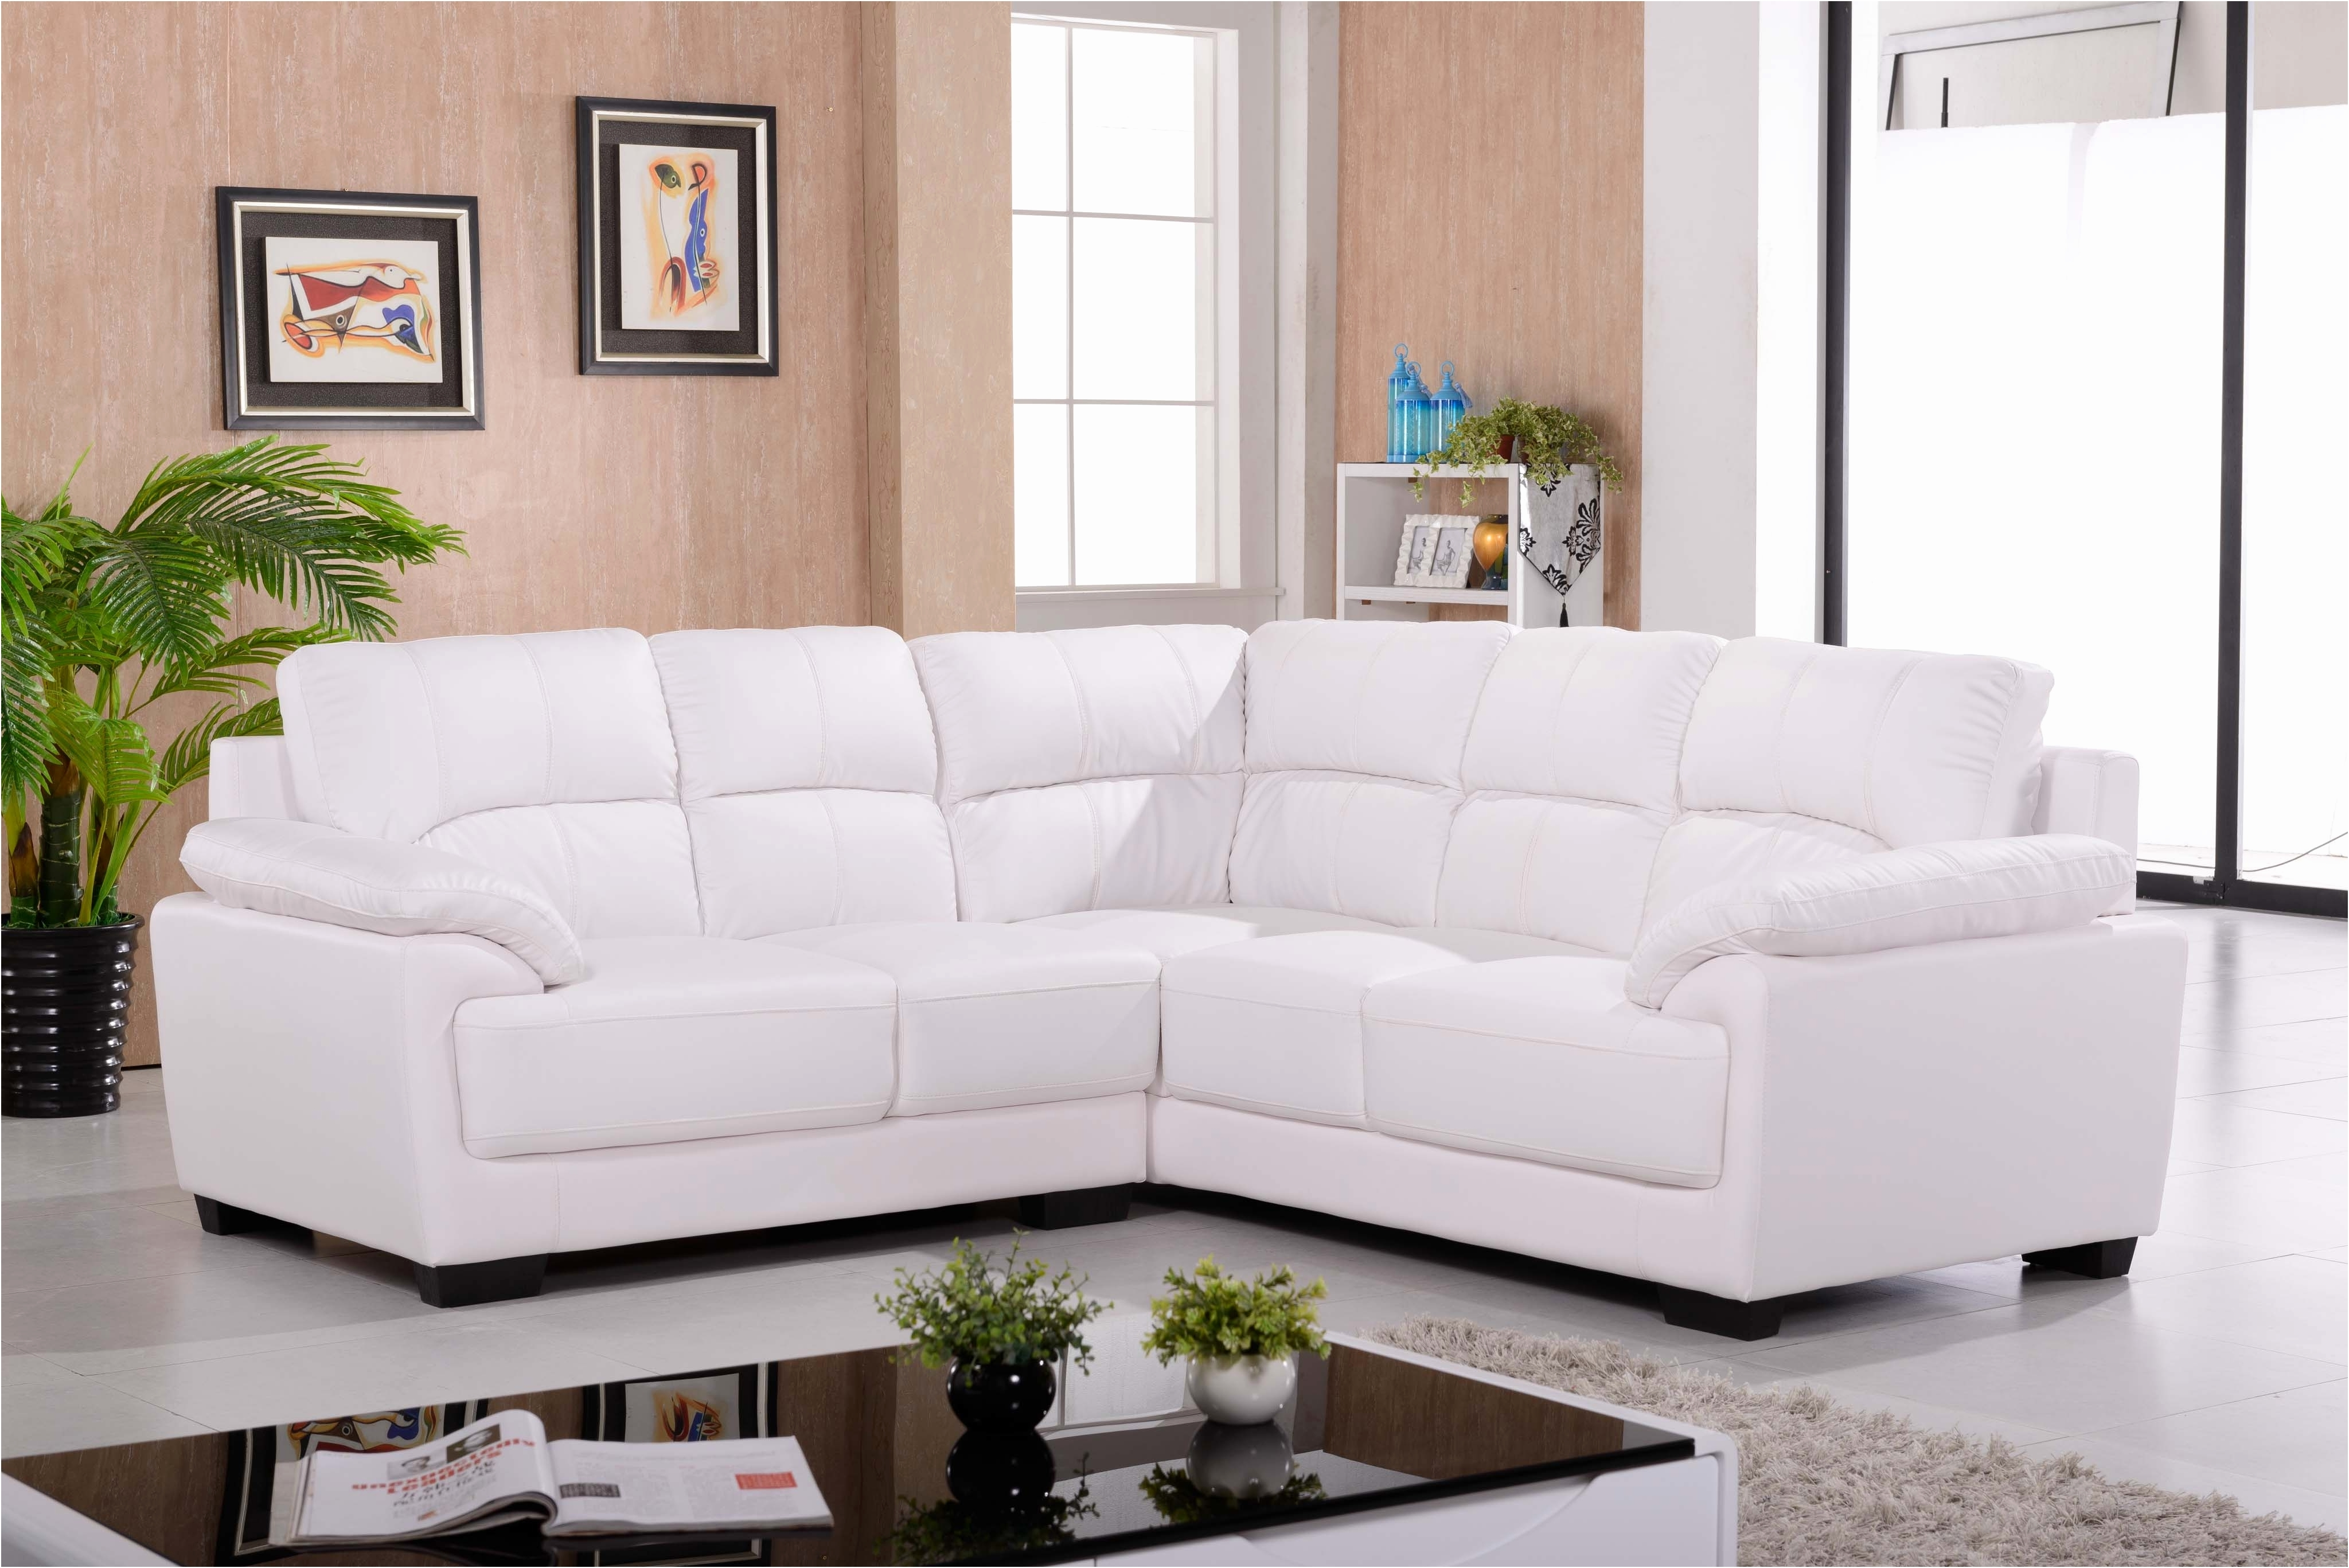 Fashionable Canada Sale Sectional Sofas For Sofas Awesome White Leather Loveseat Gray Sectional Sofa Canada (View 4 of 15)